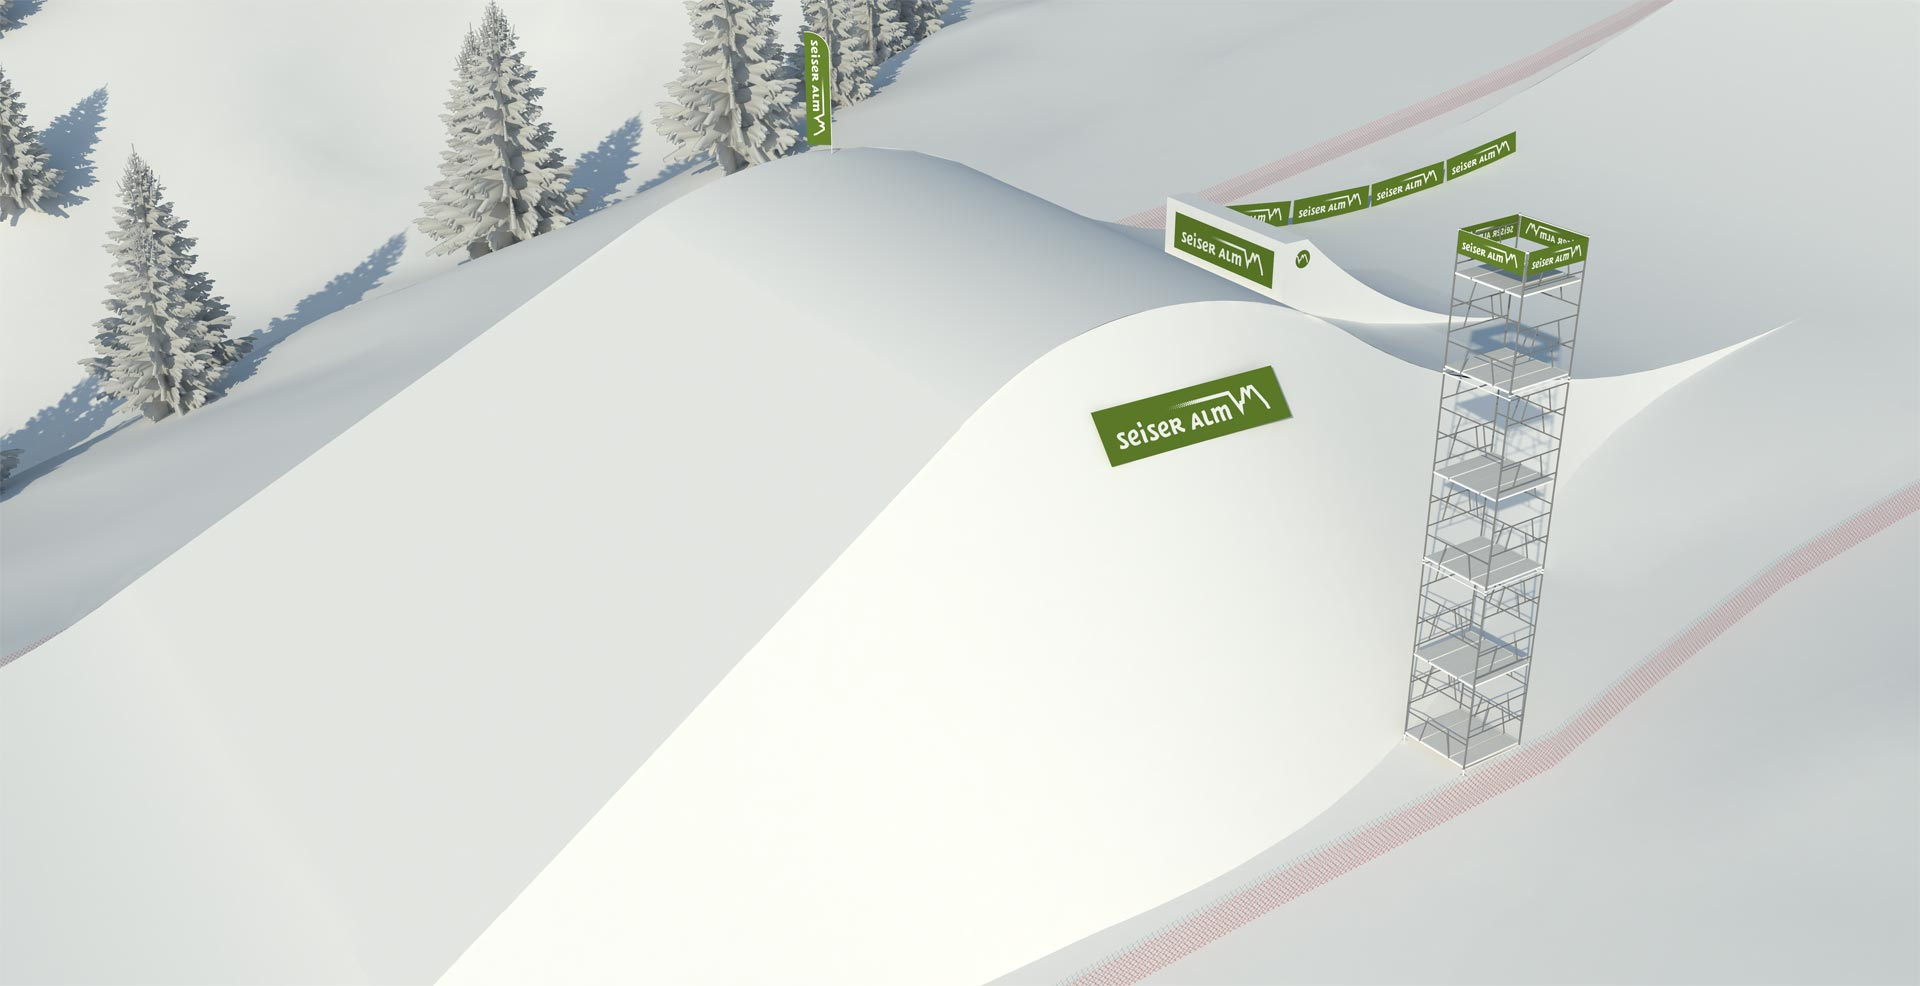 FIS Slopestyle Weltcup Seiser Alm